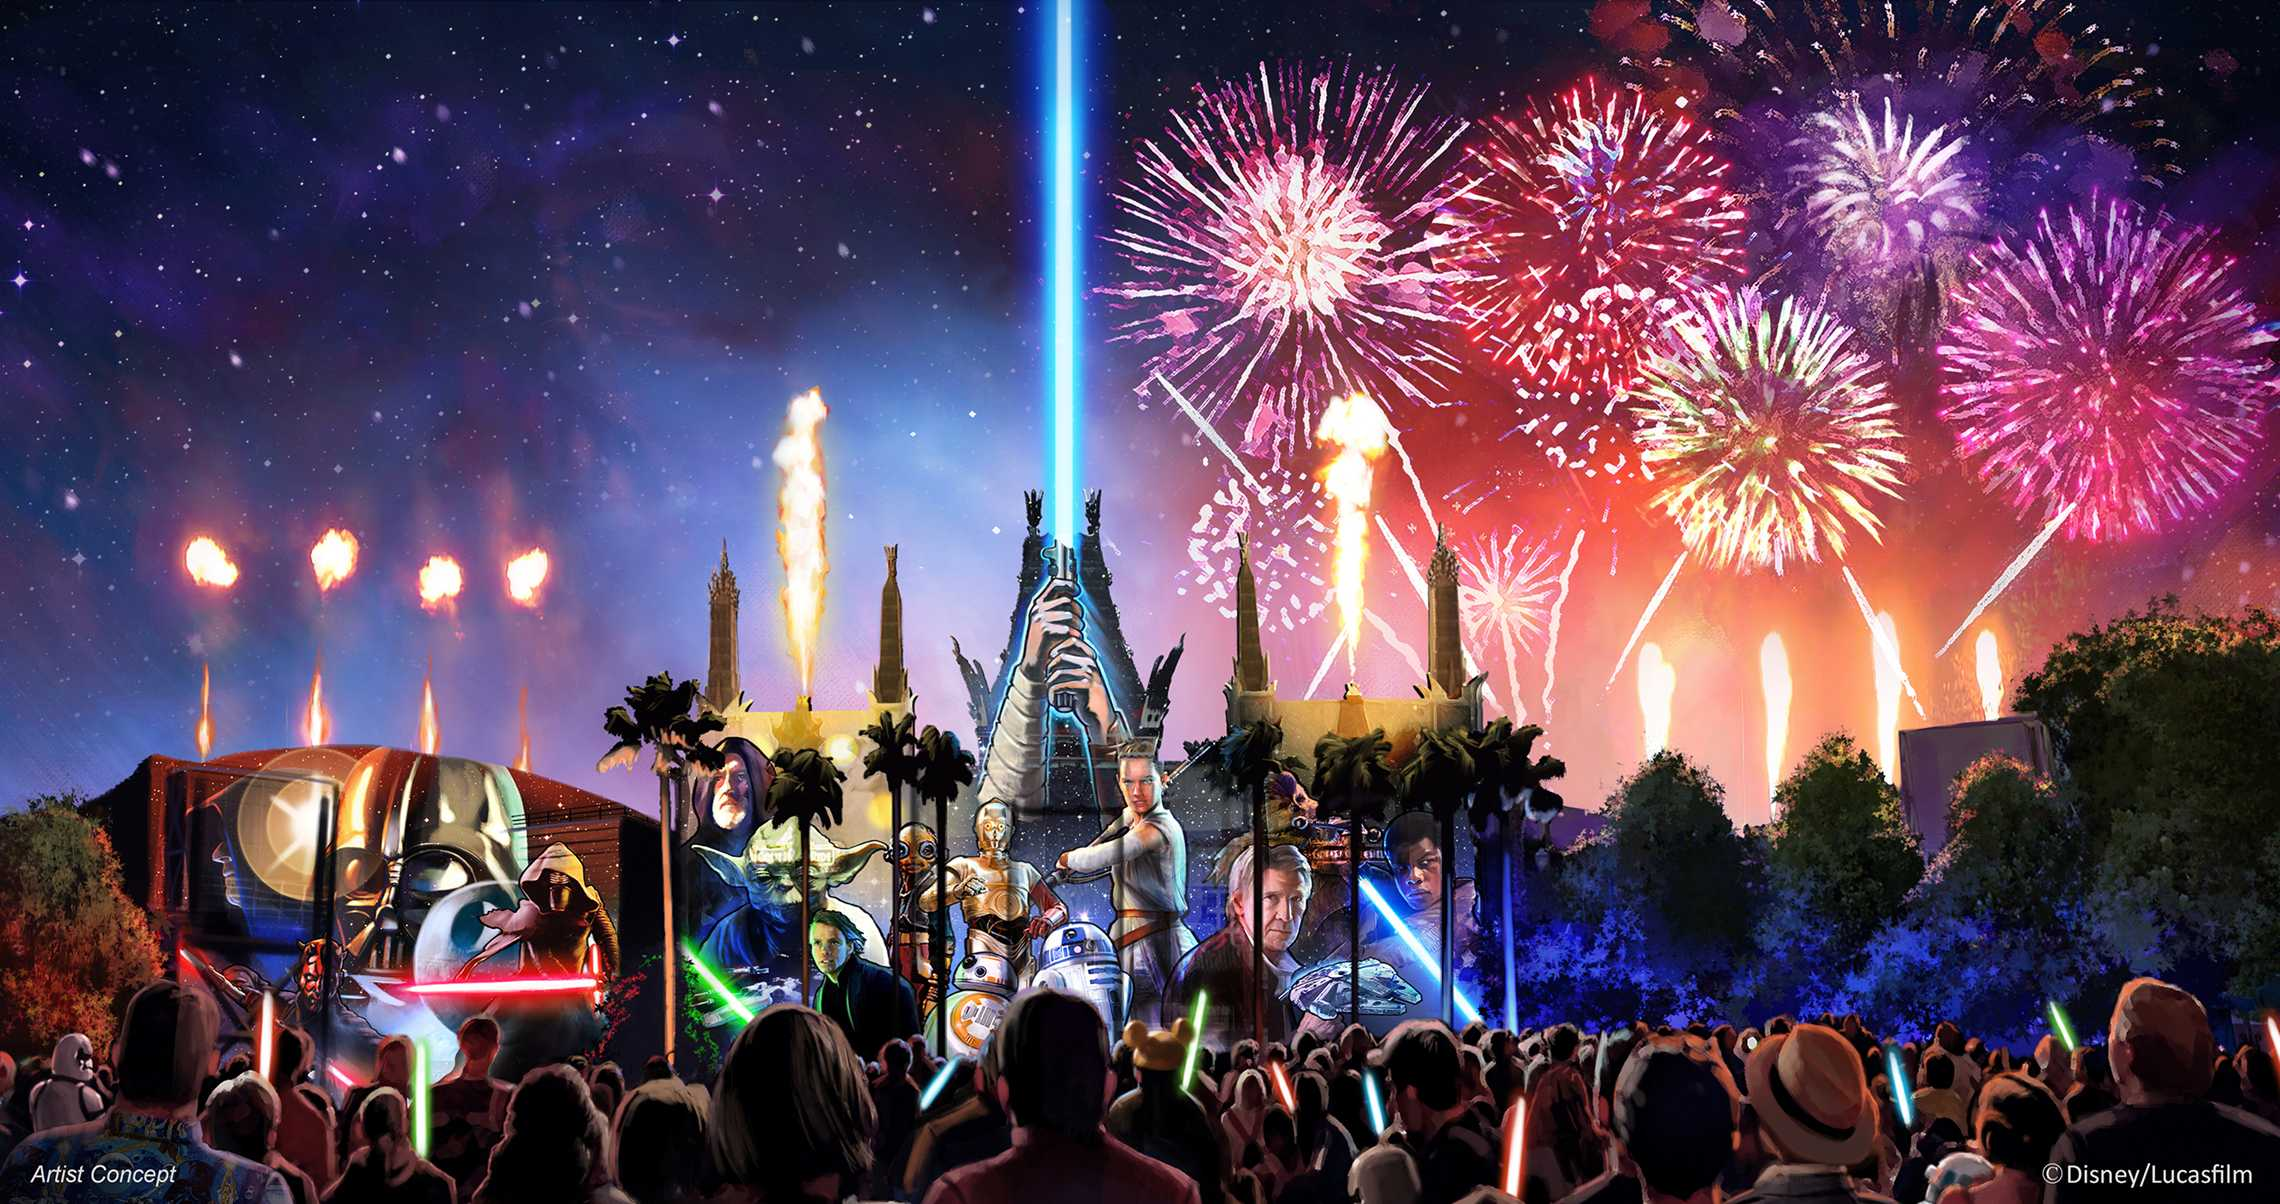 New Star Wars Fireworks Show to Debut June 17